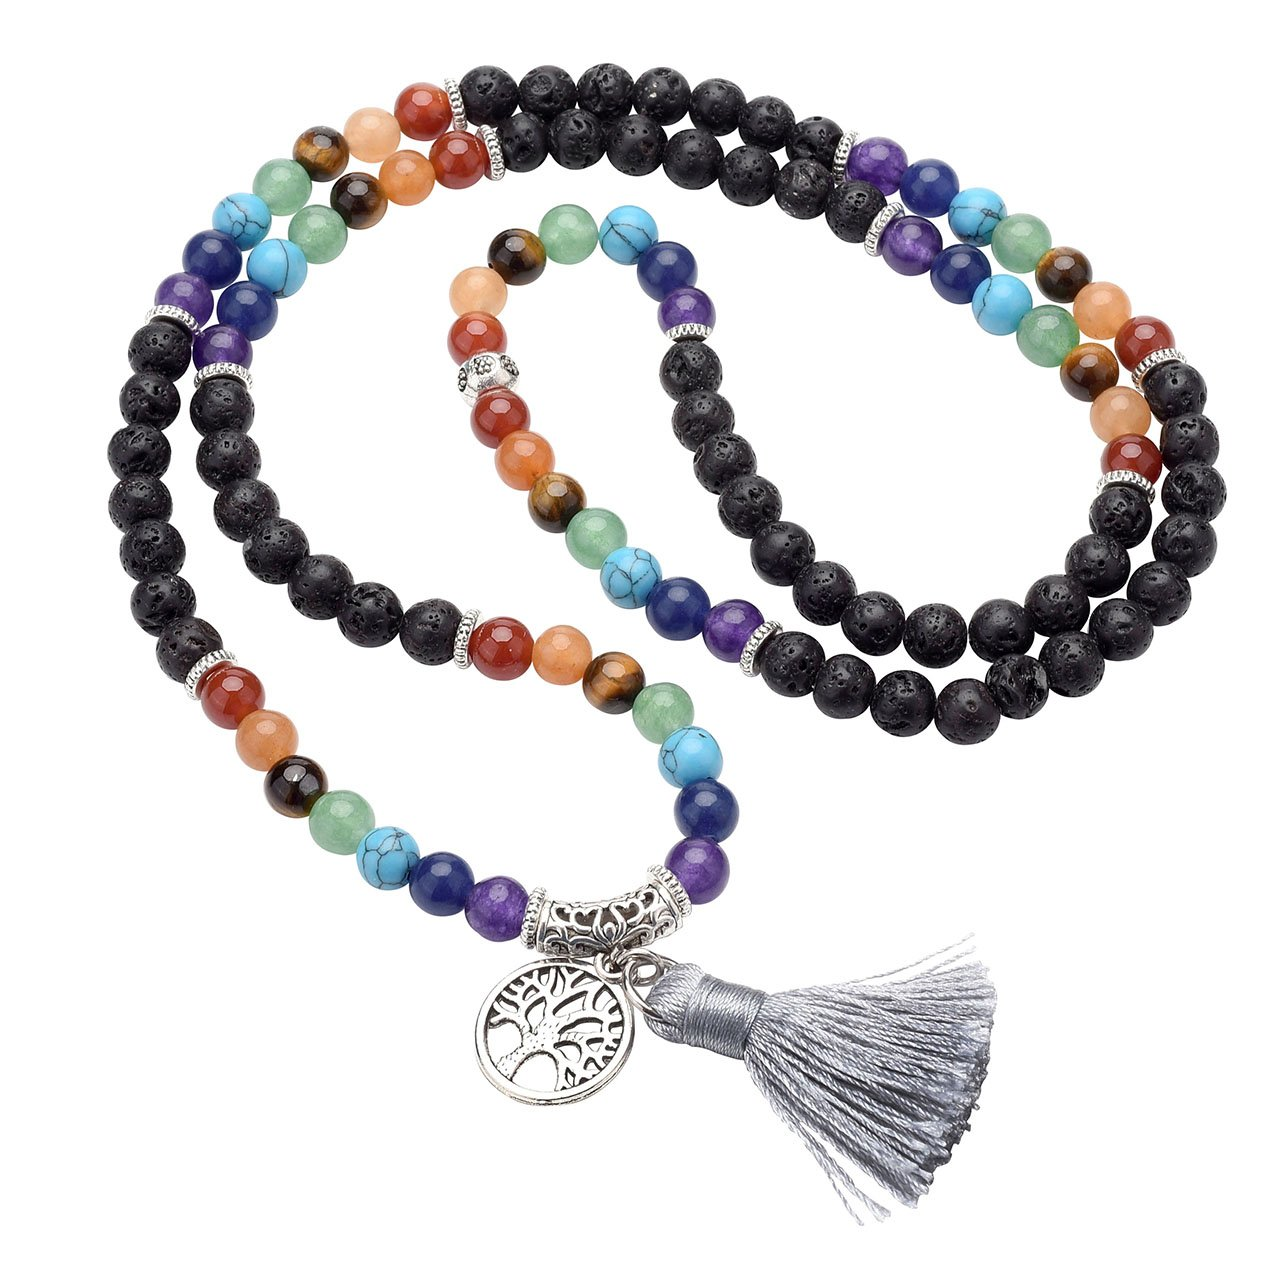 Top Plaza 7 Chakra Buddhist Mala Prayer Beads 108 Meditation Healing Multilayer Bracelet/Necklace W/Tree of Life Tassel Charm (6 Pack) ATPUS65613